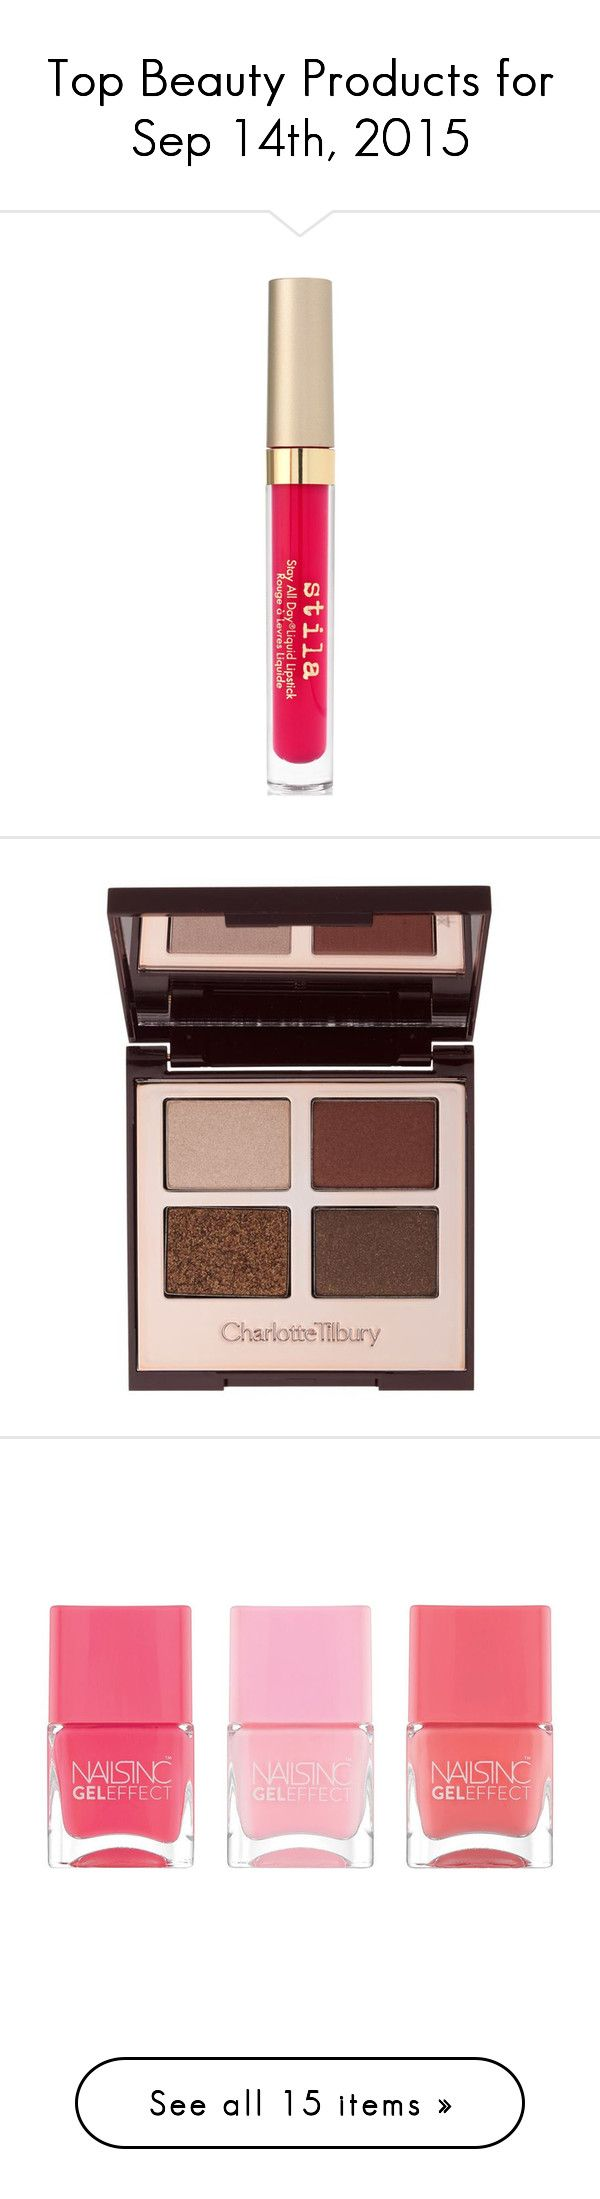 """""""Top Beauty Products for Sep 14th, 2015"""" by polyvore ❤ liked on Polyvore featuring beauty products, makeup, lip makeup, lipstick, amalfi, stila, matte finish lipstick, stila lipstick, lips makeup and matte lipstick"""